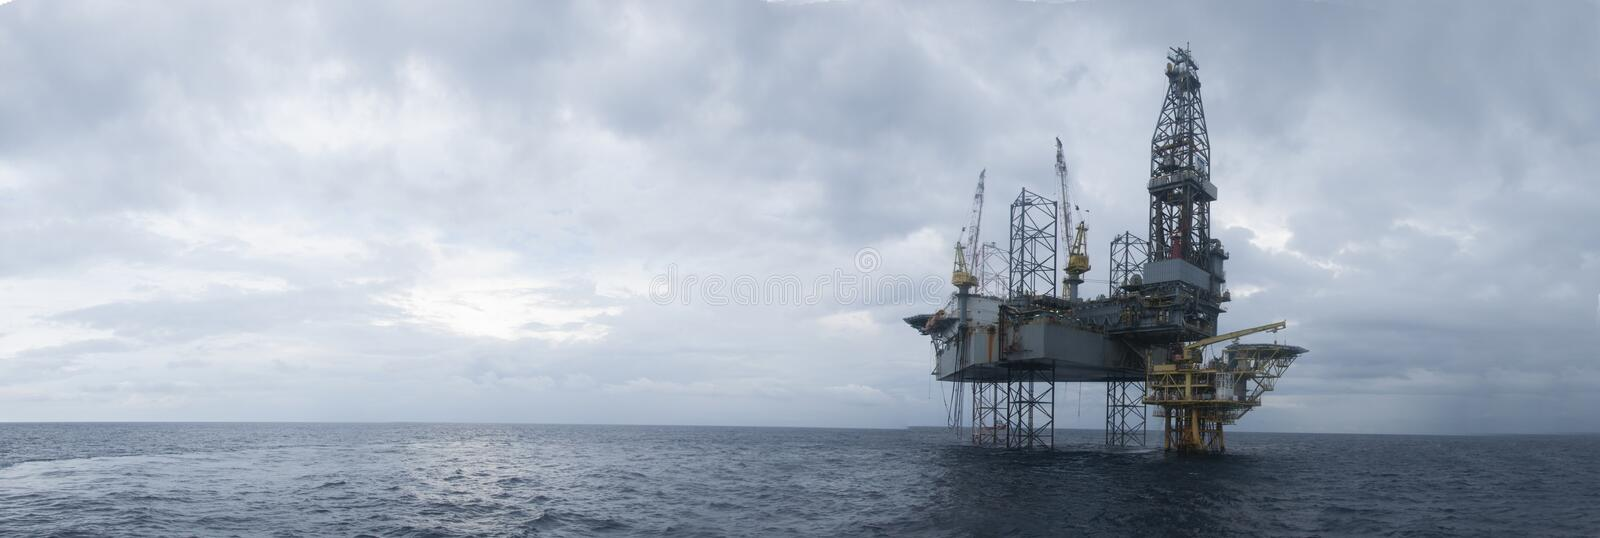 Jack Up Drilling Rig Over offshore la cima di petrolio e di gas fotografie stock libere da diritti